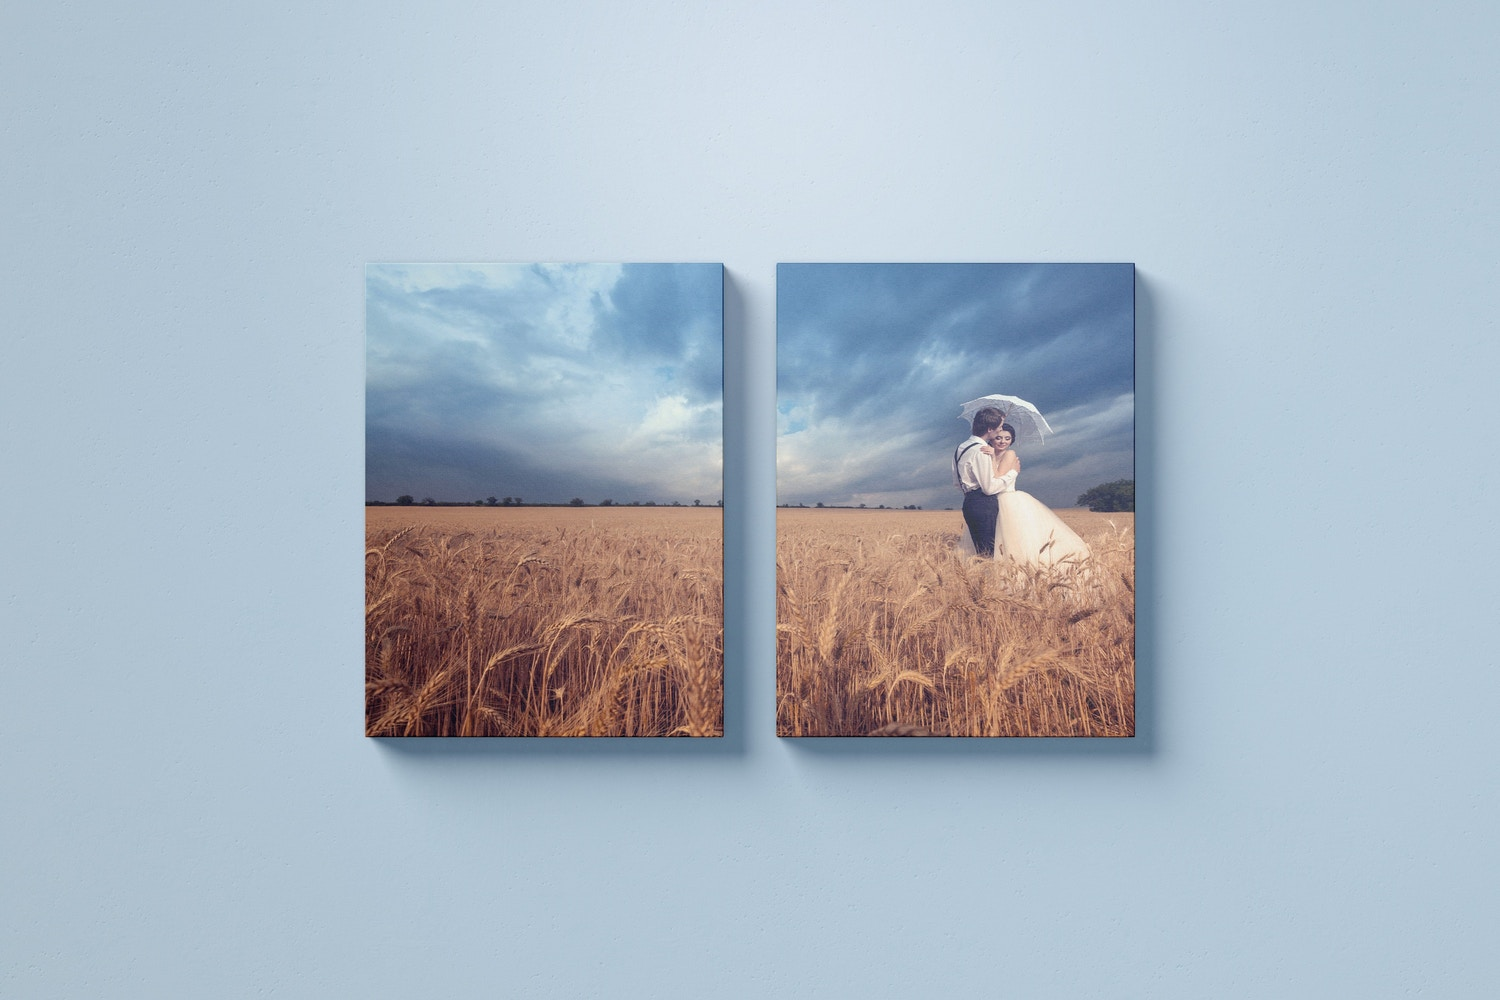 Two 3:4 Portrait Canvas Mockup Hanging on Wall, Front View